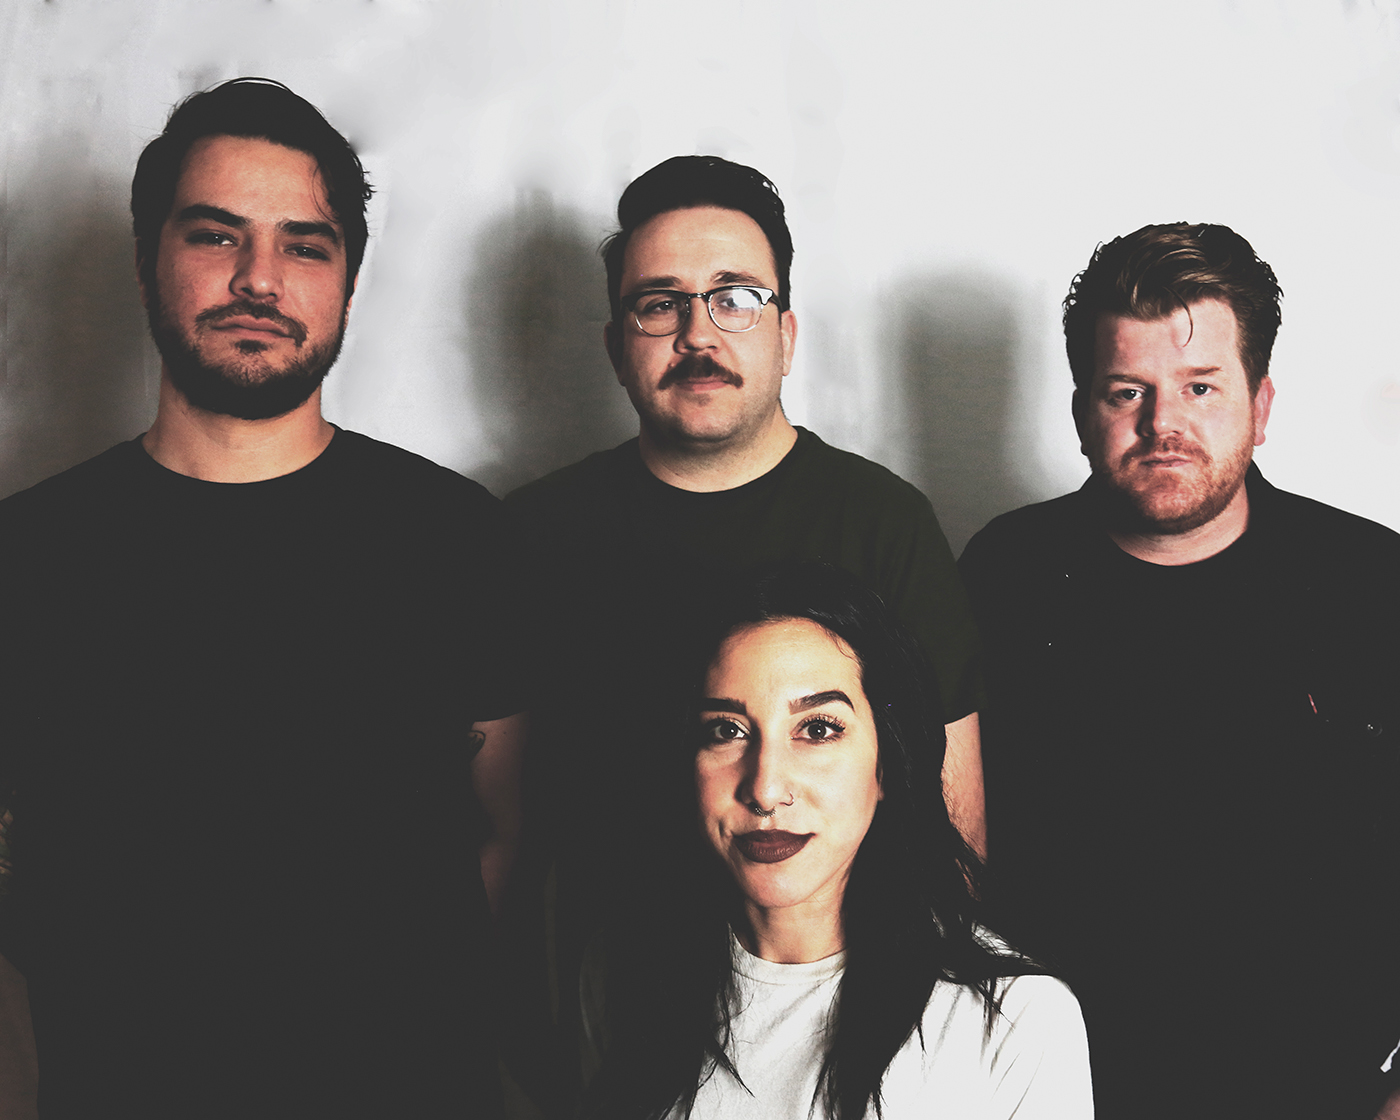 (Clockwise from left) City Ghost members Matt Mascarenas, Ken Vallejos, Chase Griffis and Sadie O'Neill merge their unique musical pasts together for their own, identifiable noise.